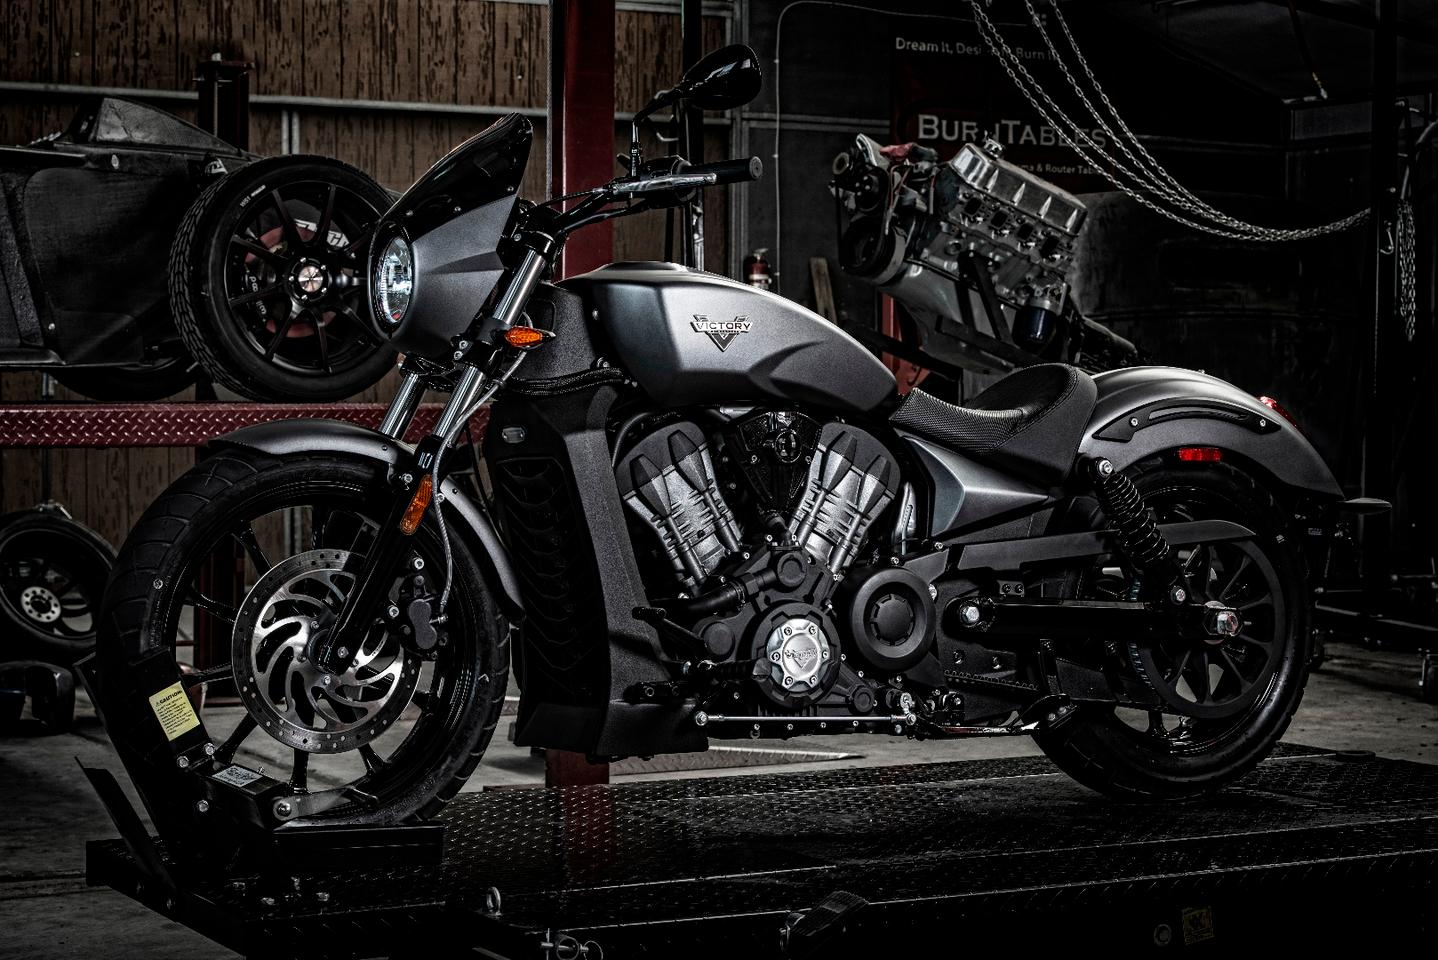 The final styling of the Victory Octane has been heavily influenced by the Ignition and Combustion concepts